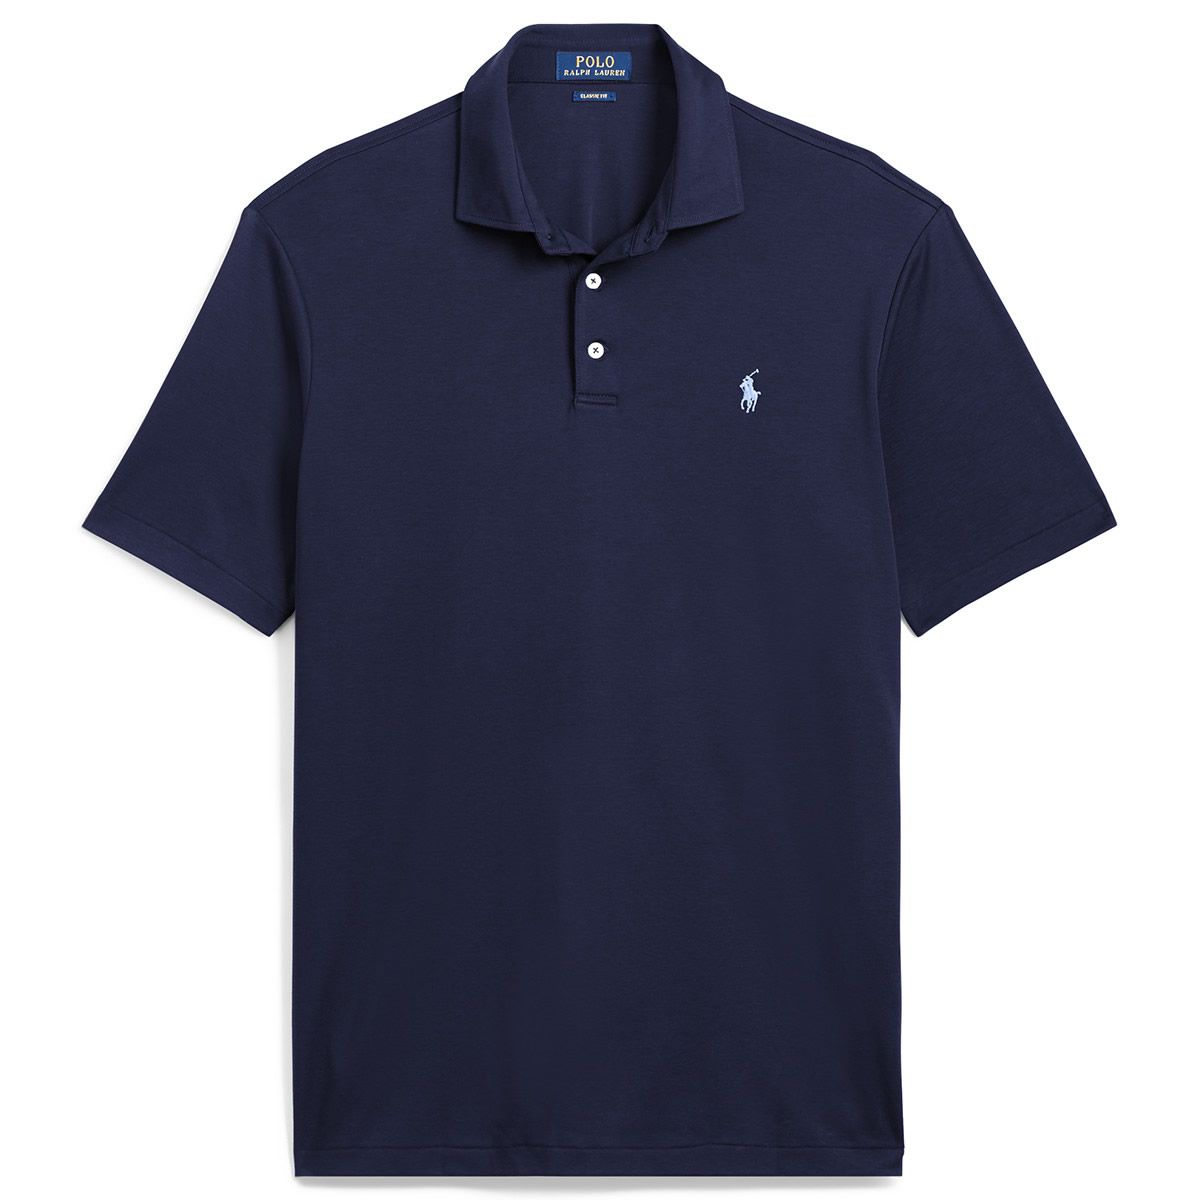 5849dcbfb69 Ralph Lauren Big and Tall Clothes for Men - Macy s